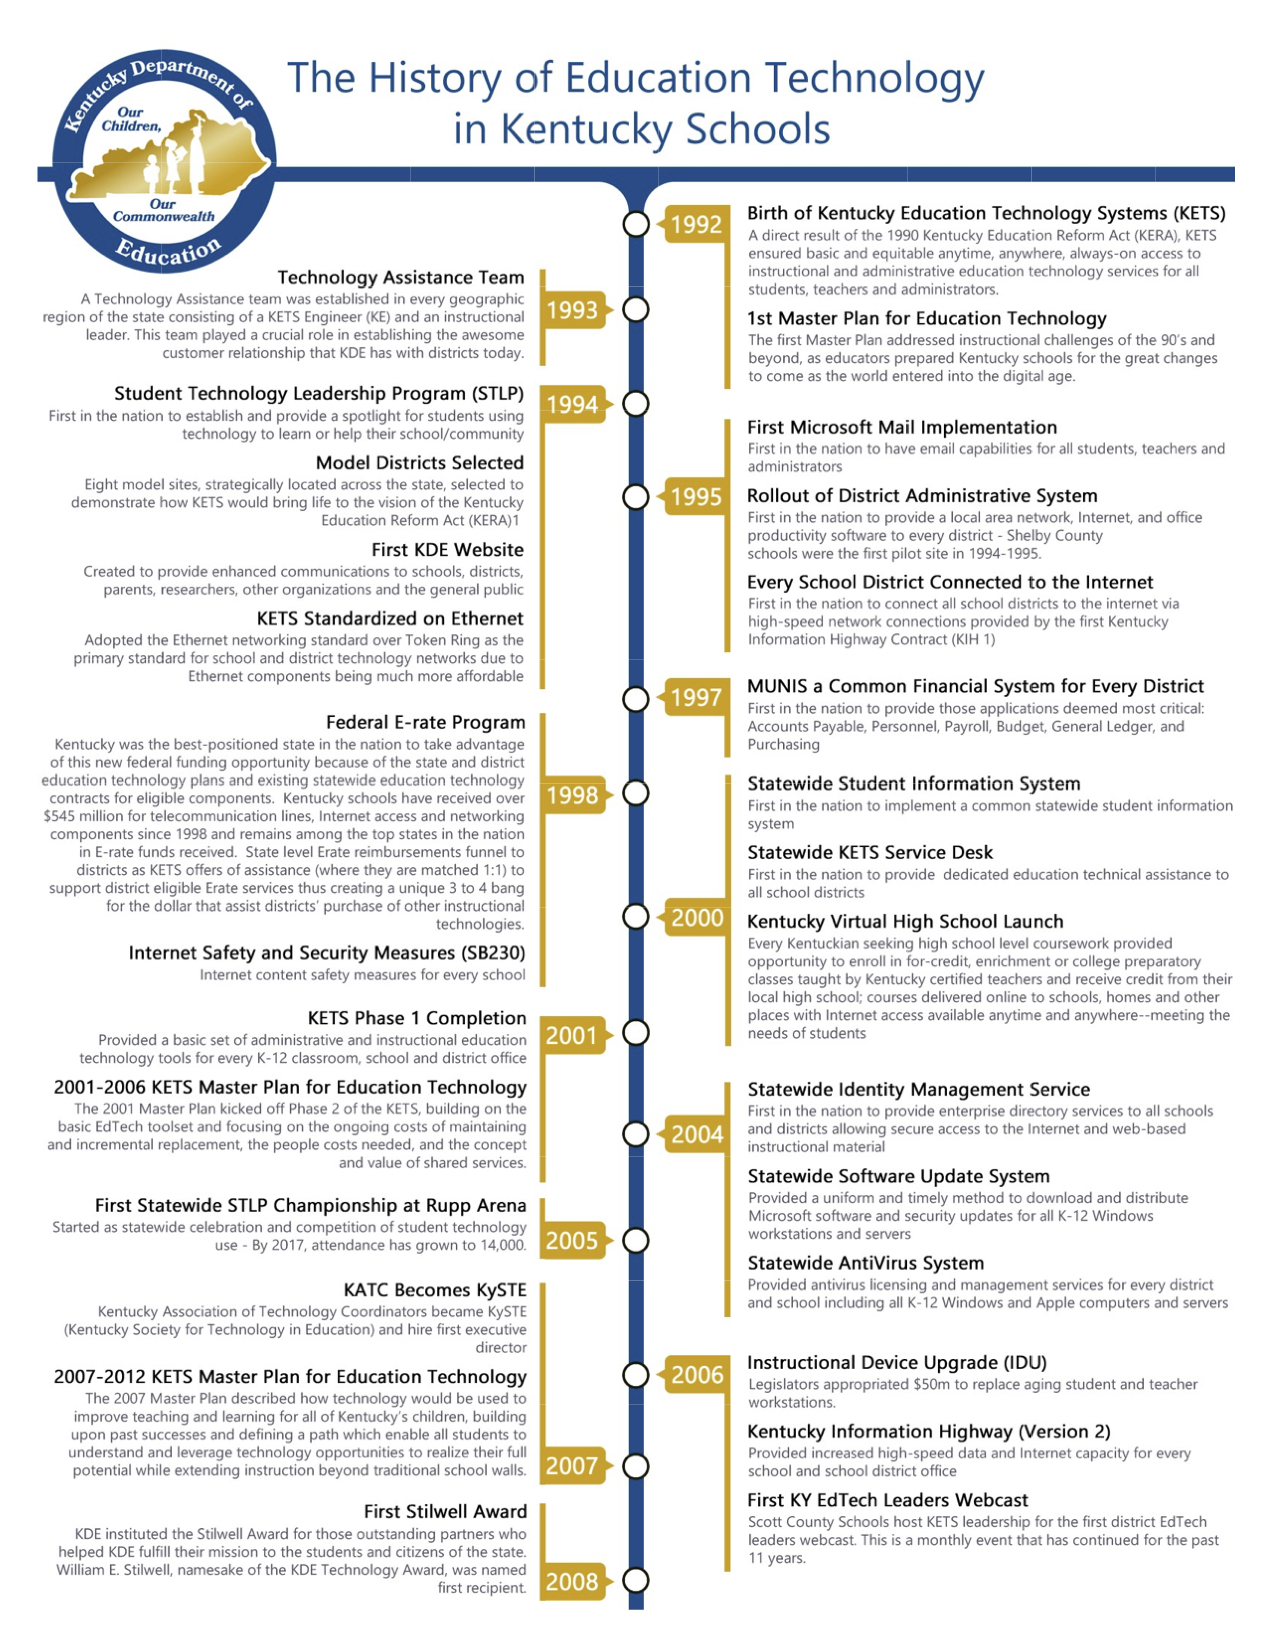 Complete Timeline Graphic